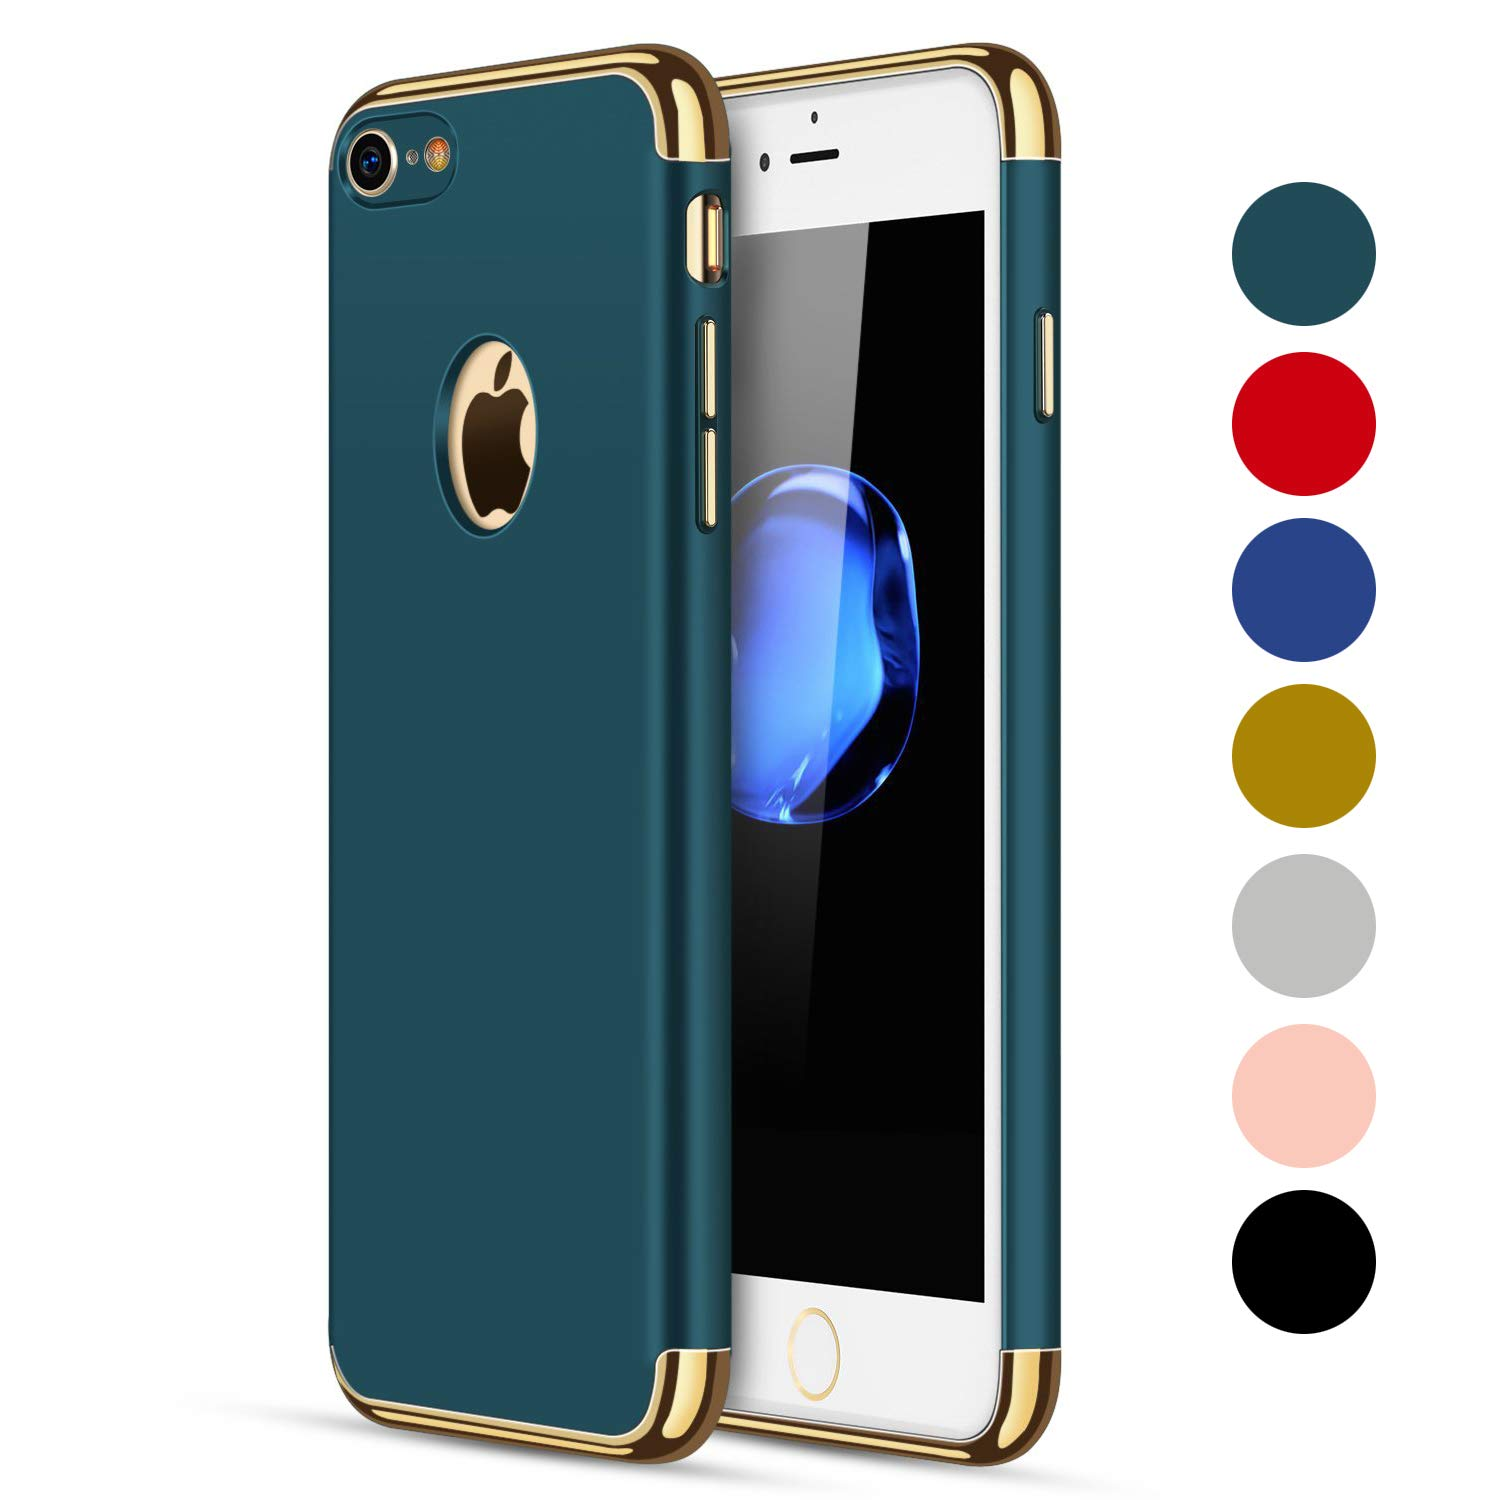 CROSYMX iPhone 7/8 Case, 3 in 1 Ultra Thin and Slim Hard Case Coated Non Slip Matte Surface with Electroplate Frame for Apple iPhone 7/8 (4.7'') - Dark Green